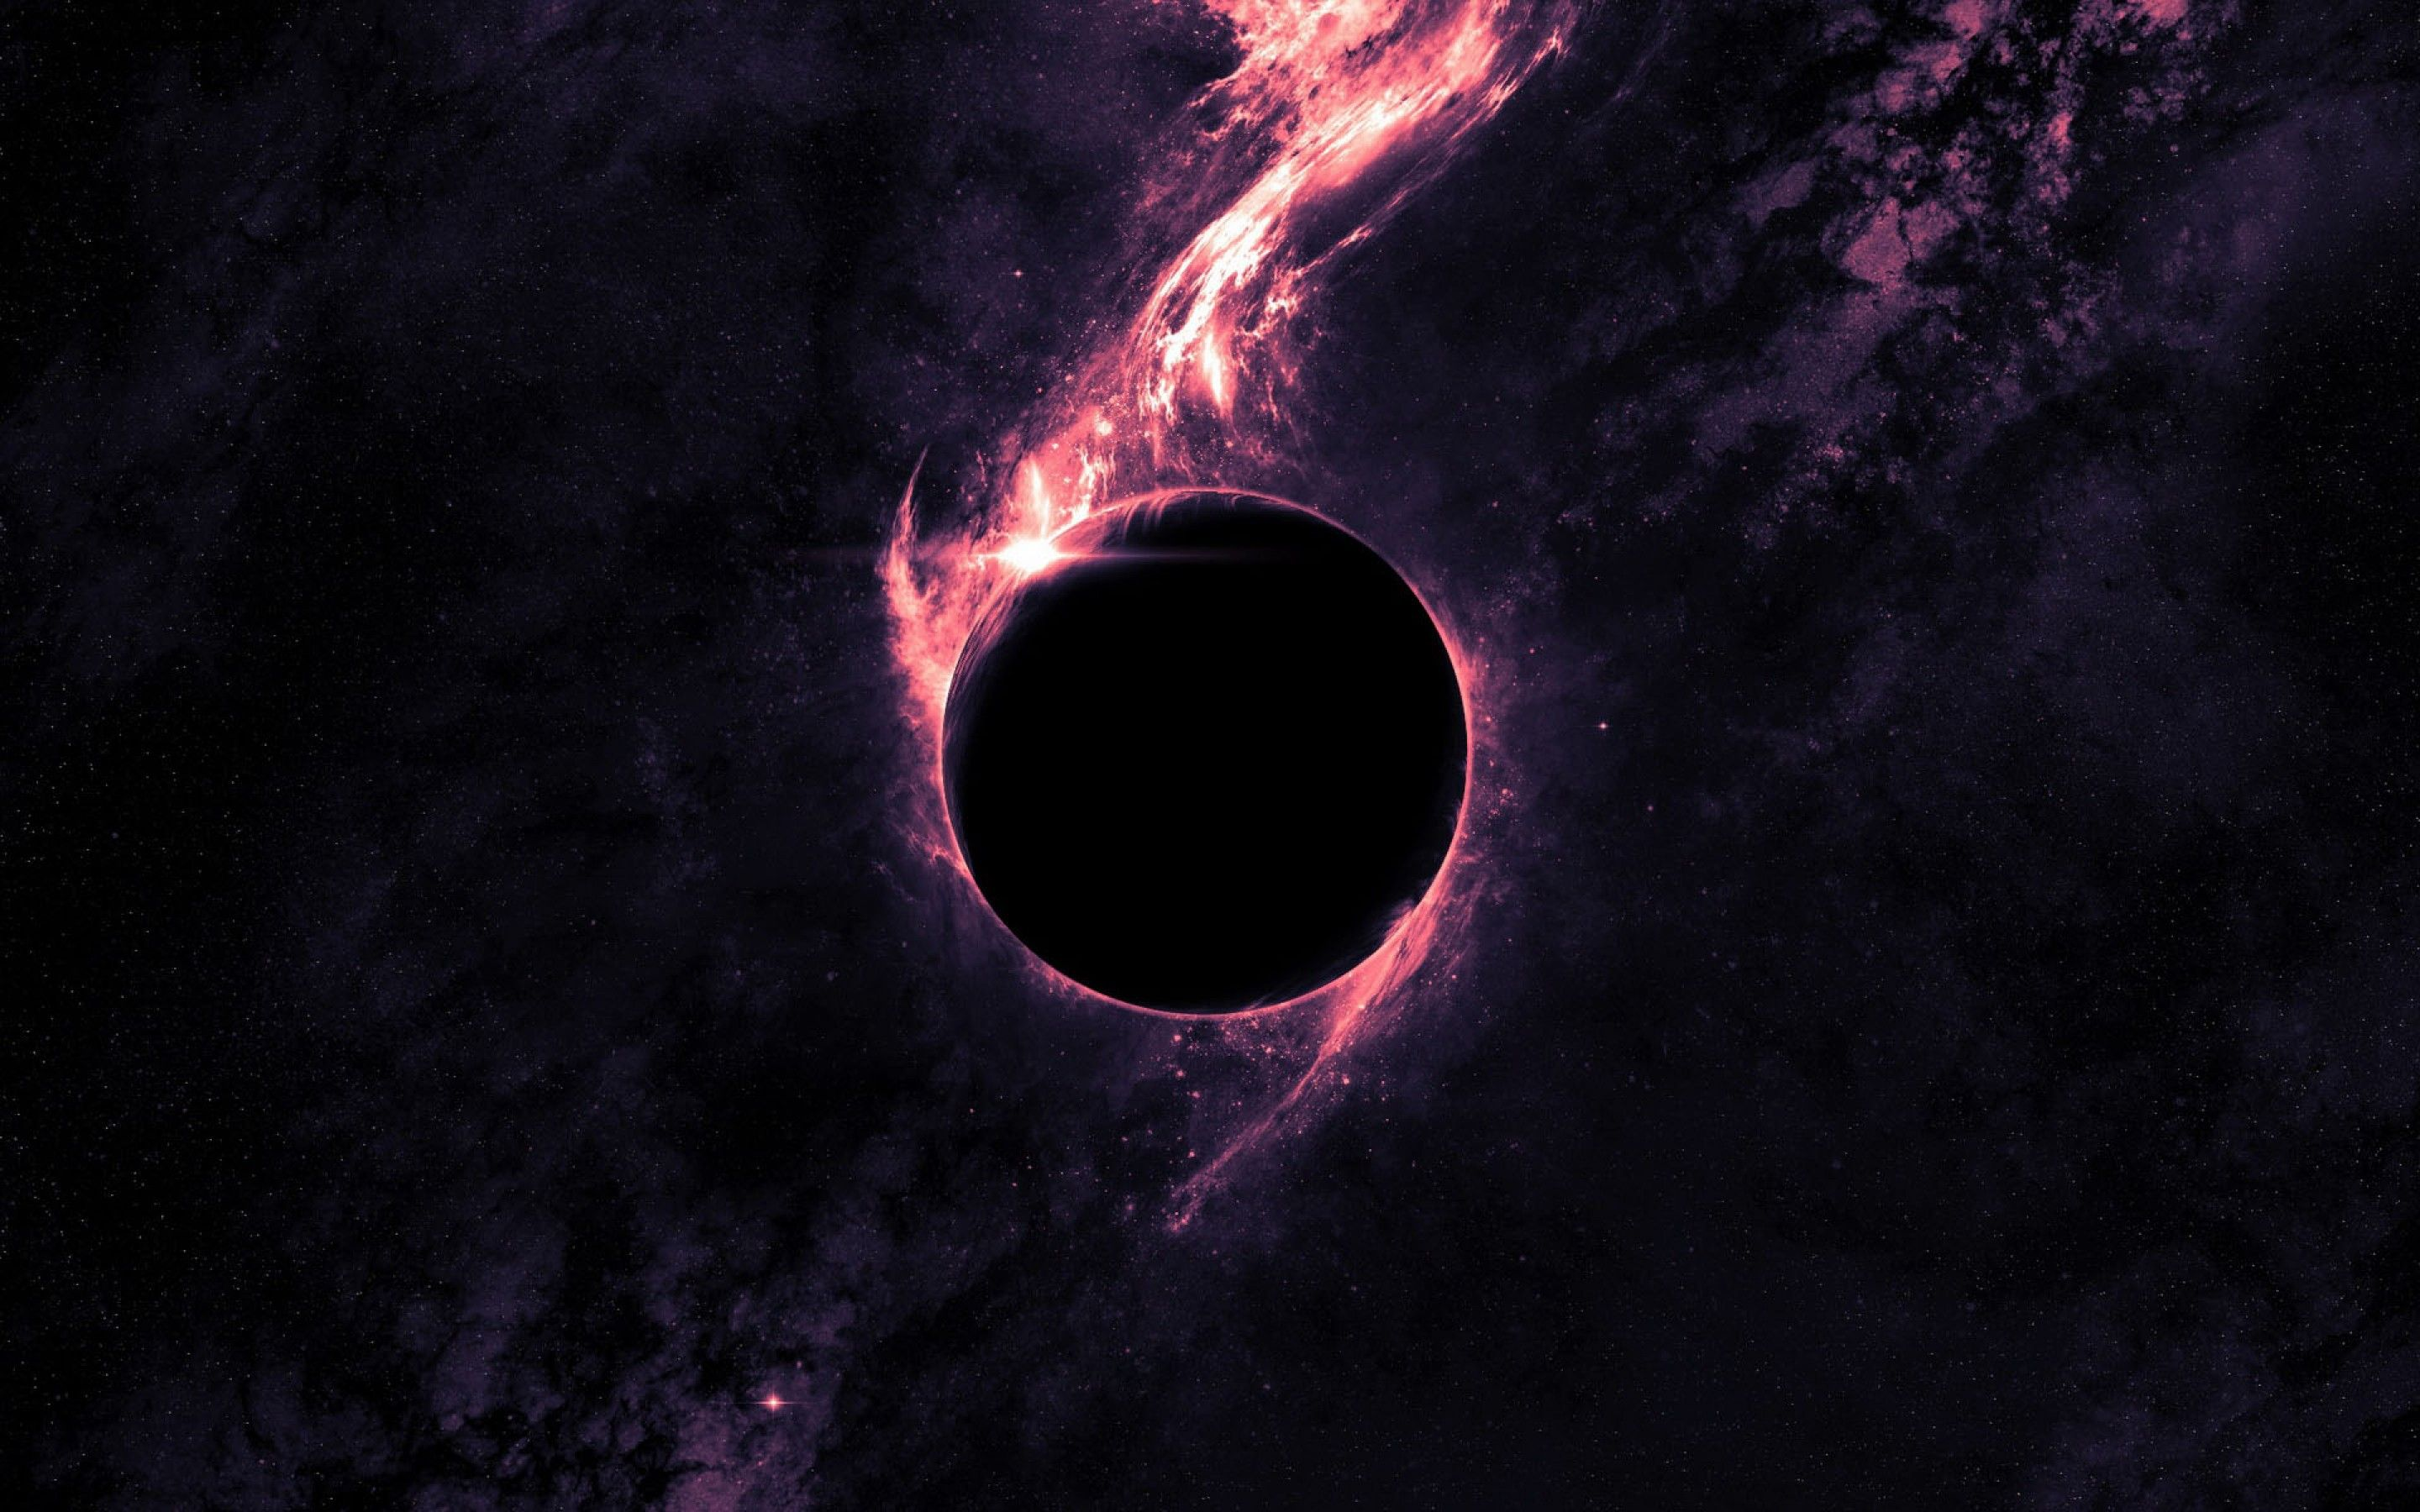 Black Hole | In the outer flow, Space | Free HD wallpapers ...